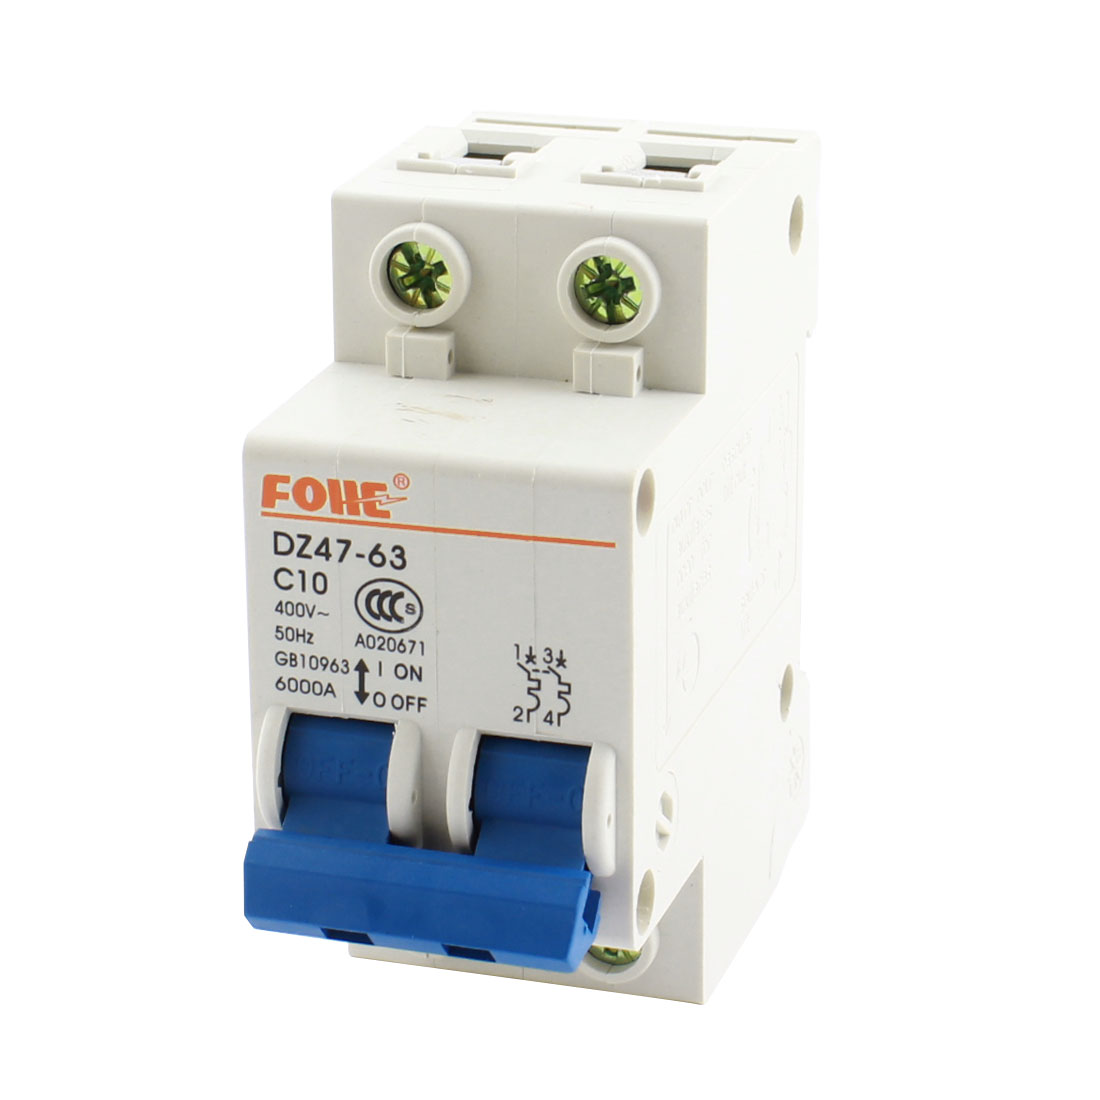 DZ47-63 AC400V 10A 6000A 35mm DIN Rail Mount 2Pole Overload Protection Miniature Circuit Breaker